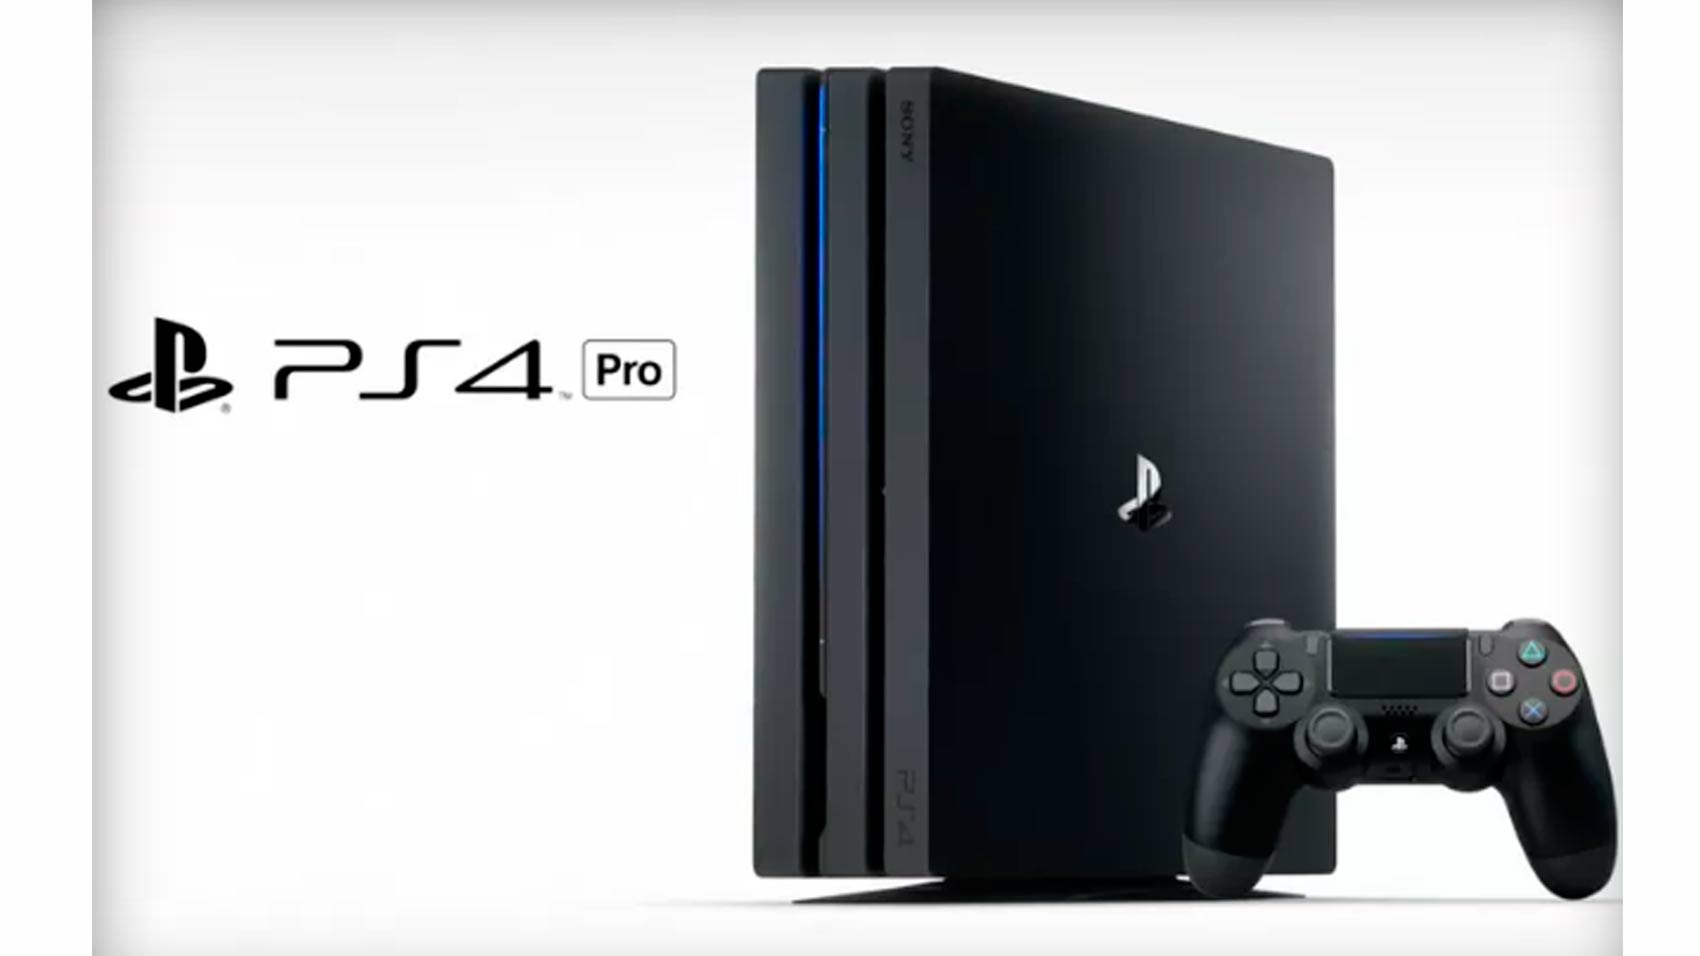 PS4 Pro; reacciones de la prensa especializada